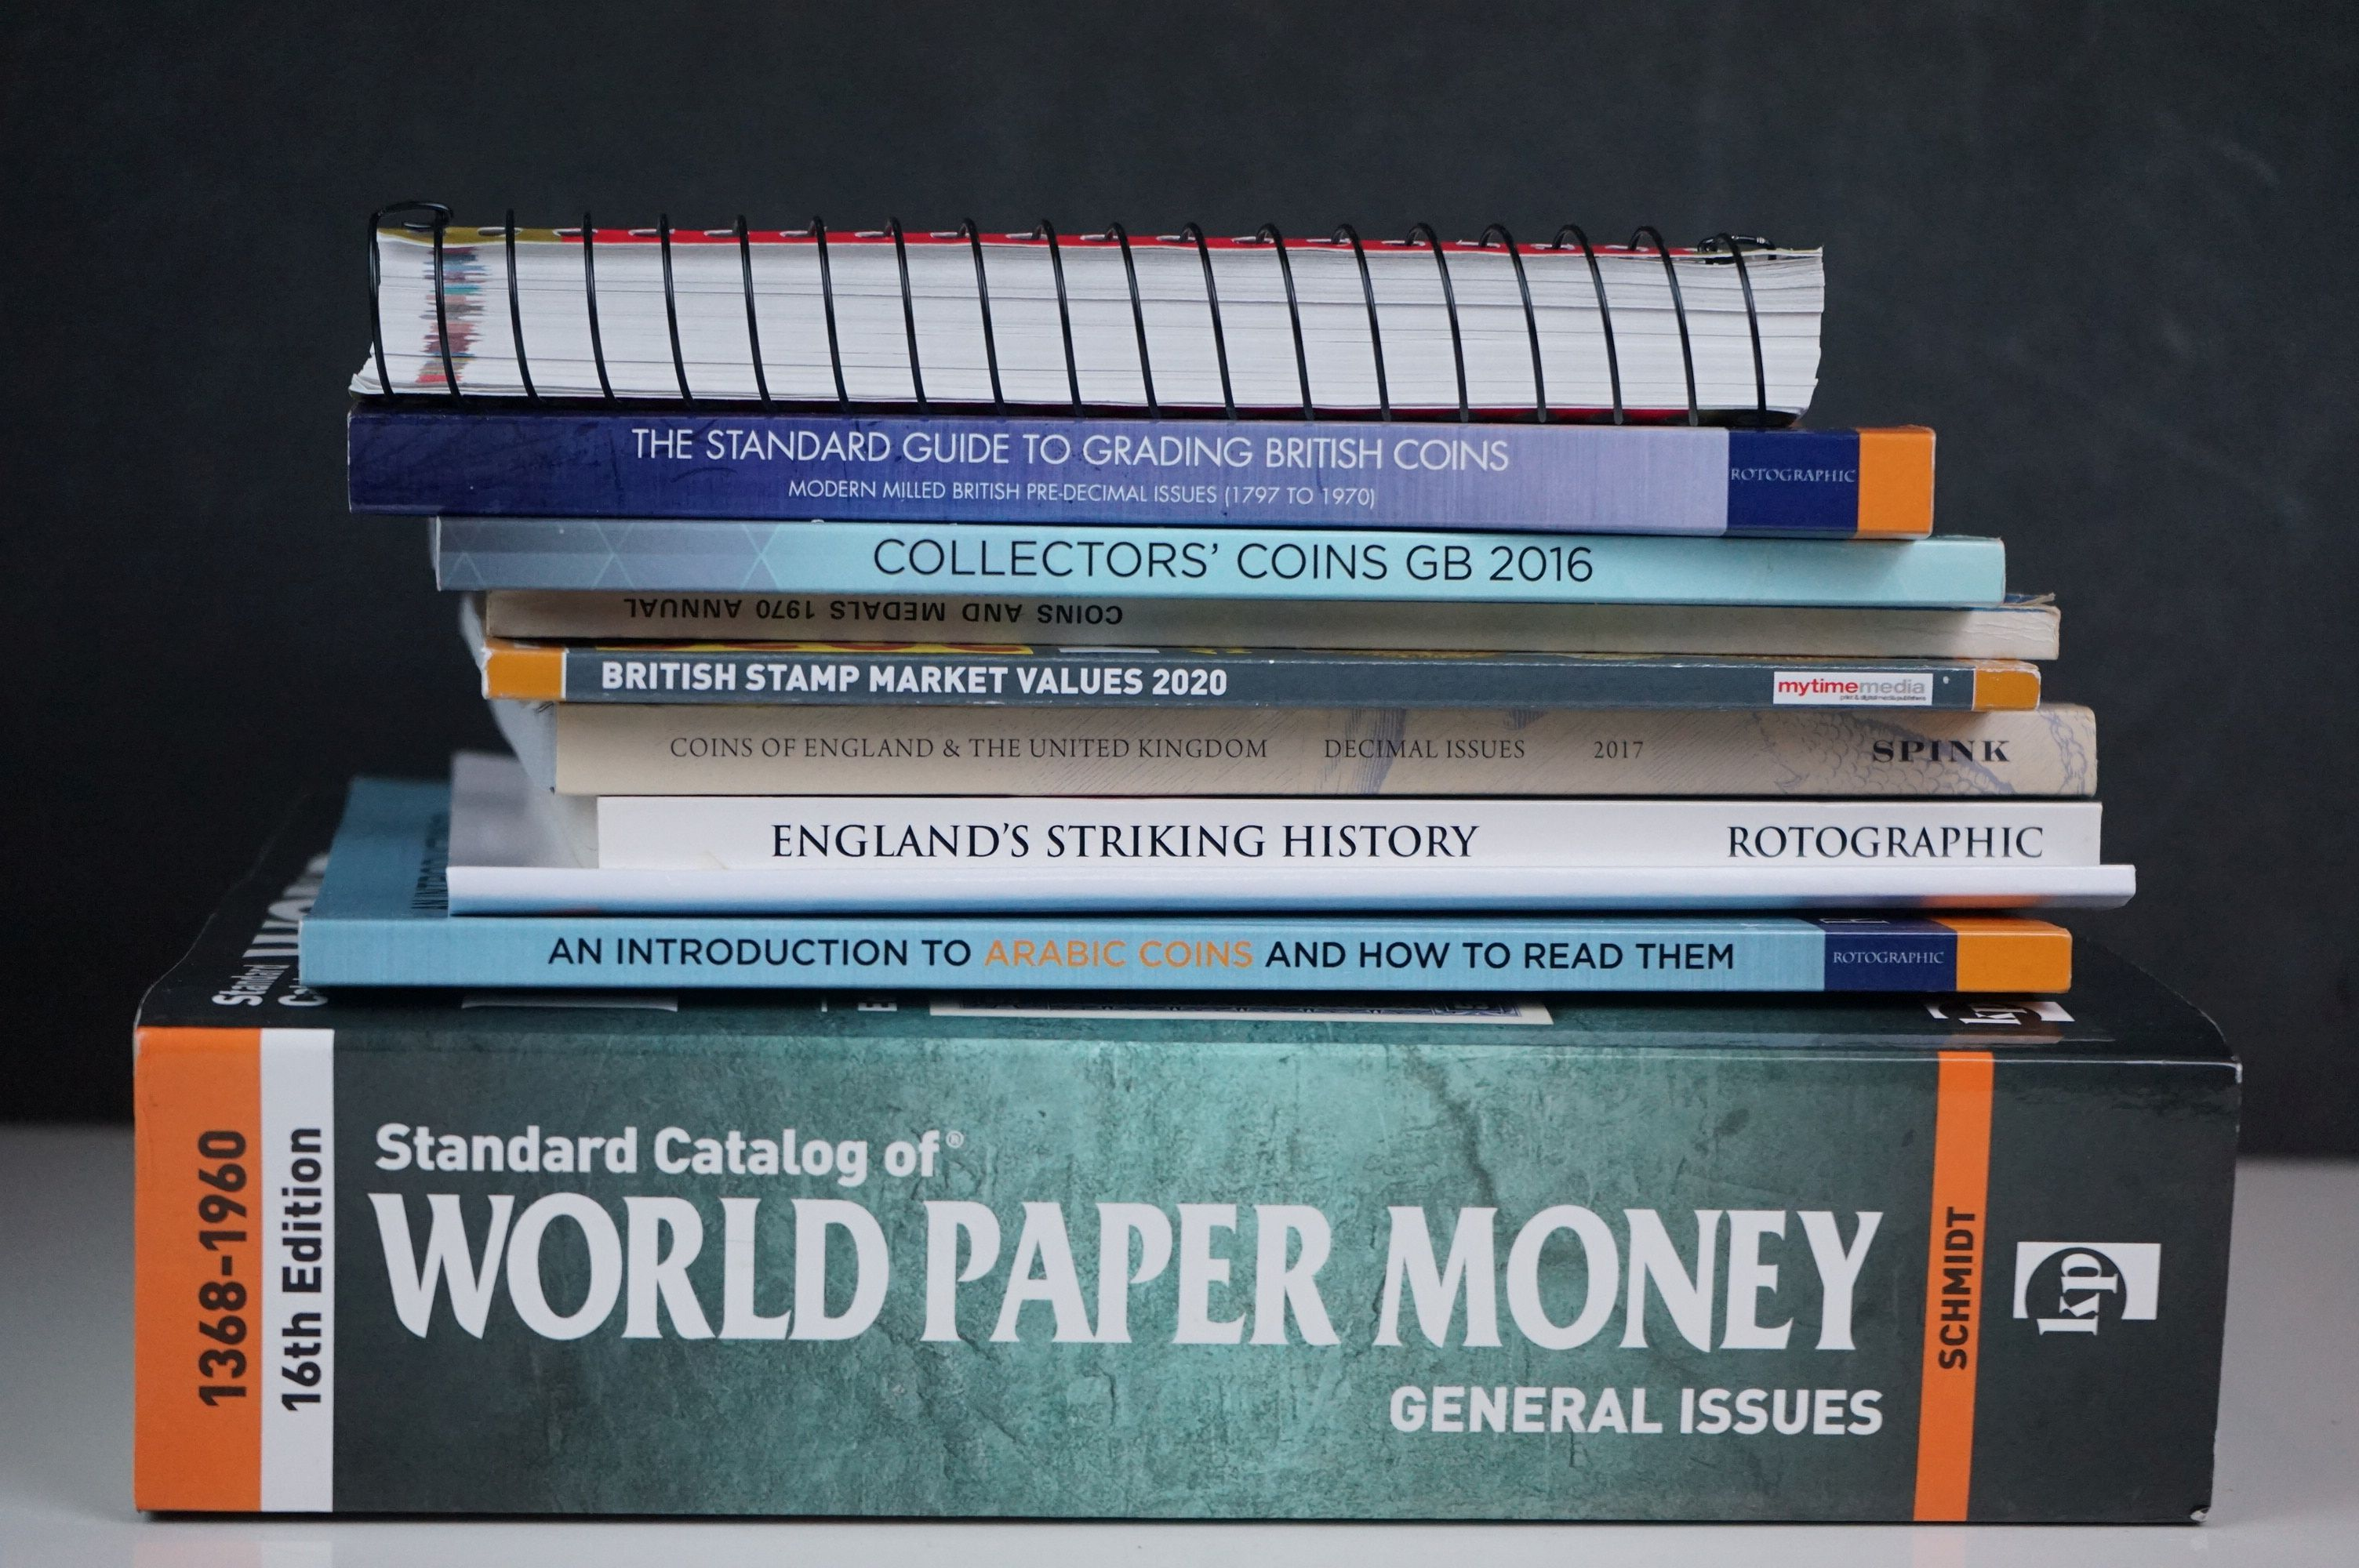 A collection of coin and banknote storage books and cases together with related reference books. - Image 6 of 7